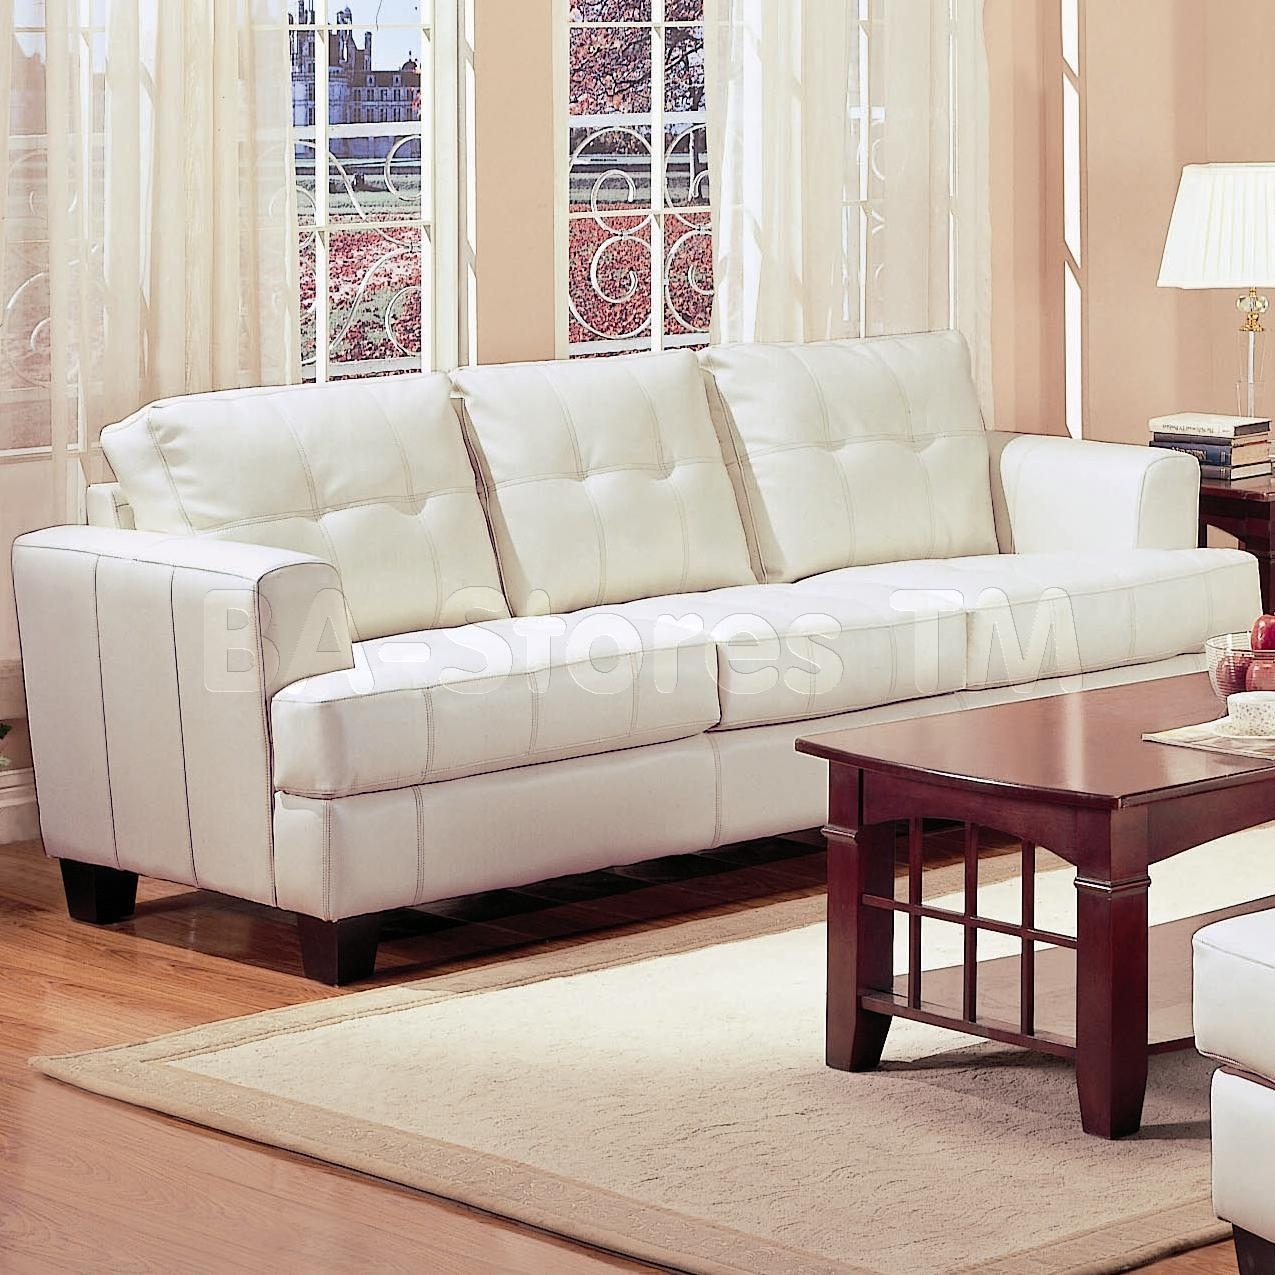 20 Best Collection Of White Leather Corner Sofa: 10 Best Collection Of Off White Leather Sofas